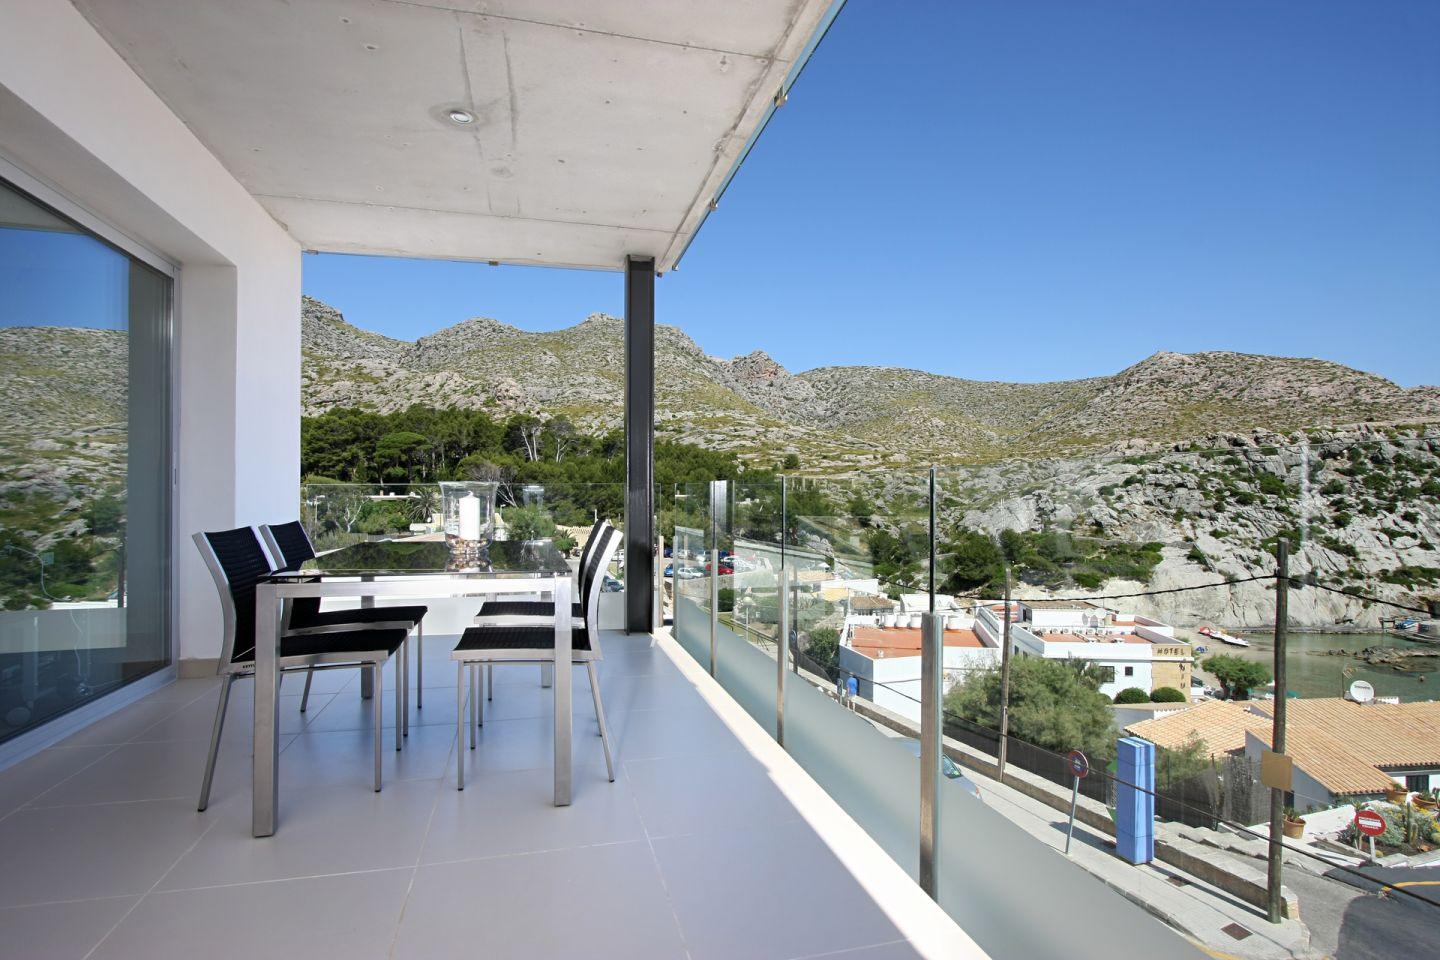 2 Bed Penthouse for sale in Cala San Vicente 13